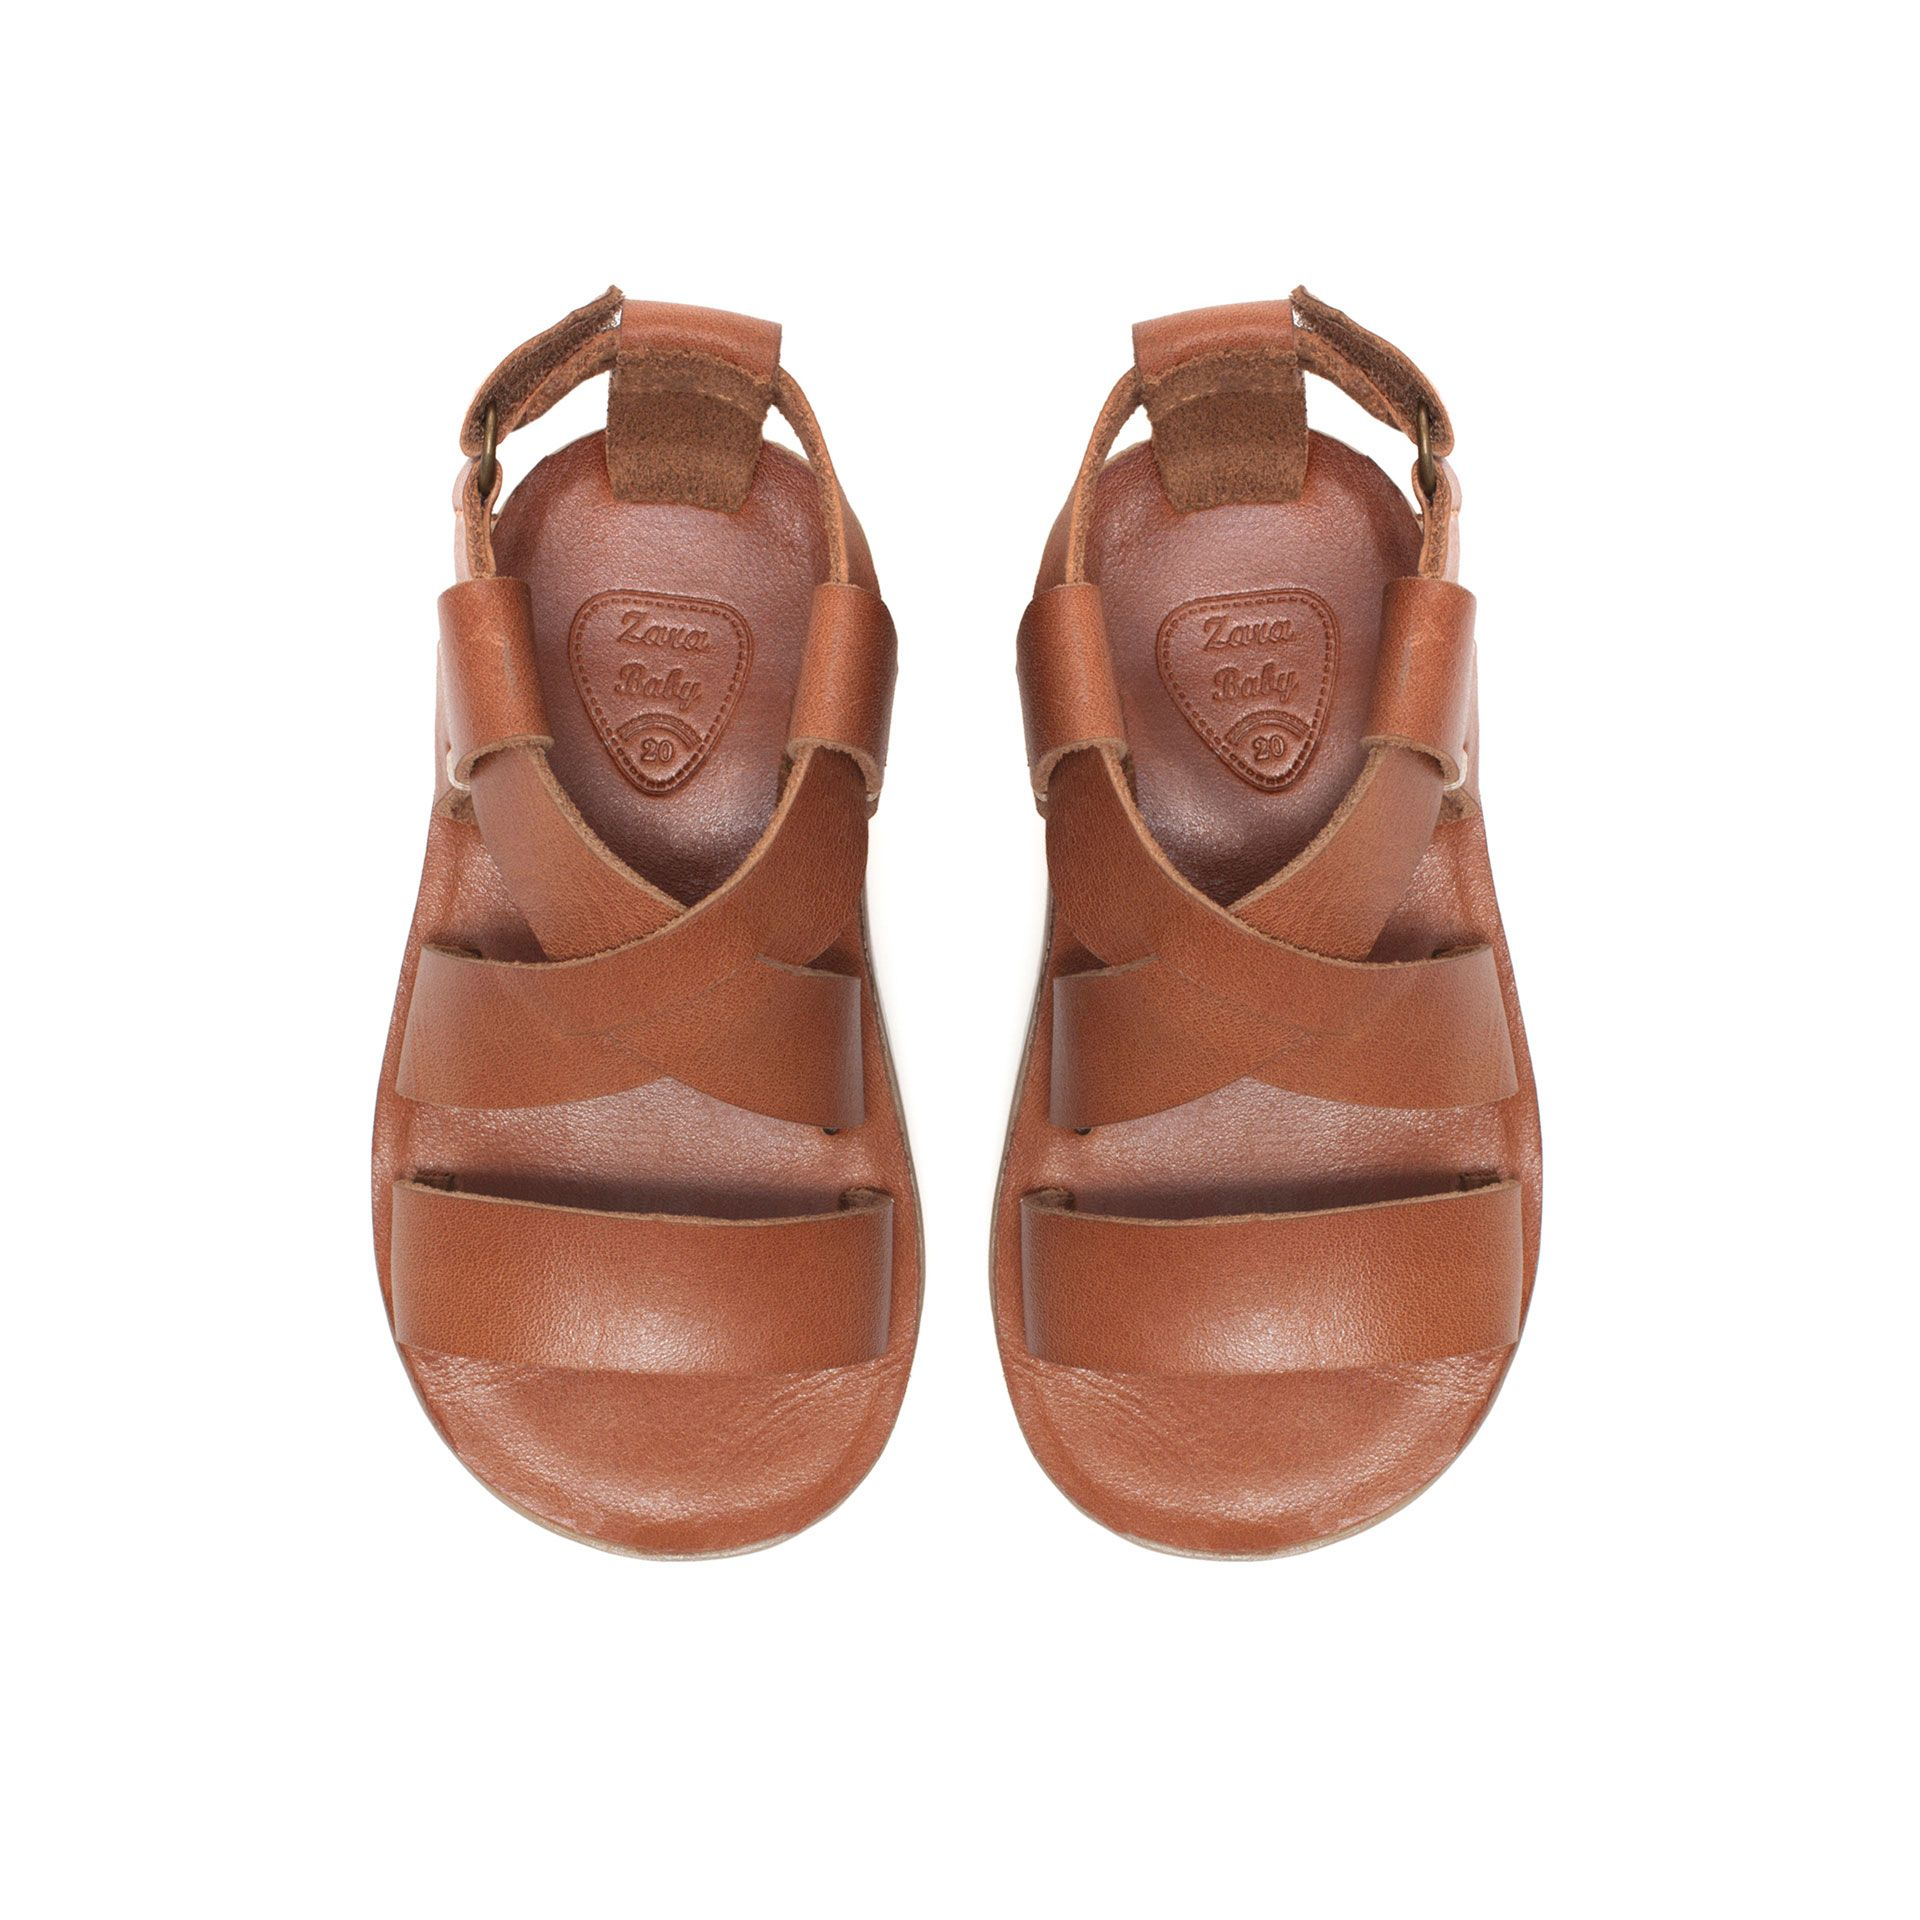 separation shoes 50f0a 2773e Trendy leather sandal - Shoes - Baby boy - Kids   ZARA United States